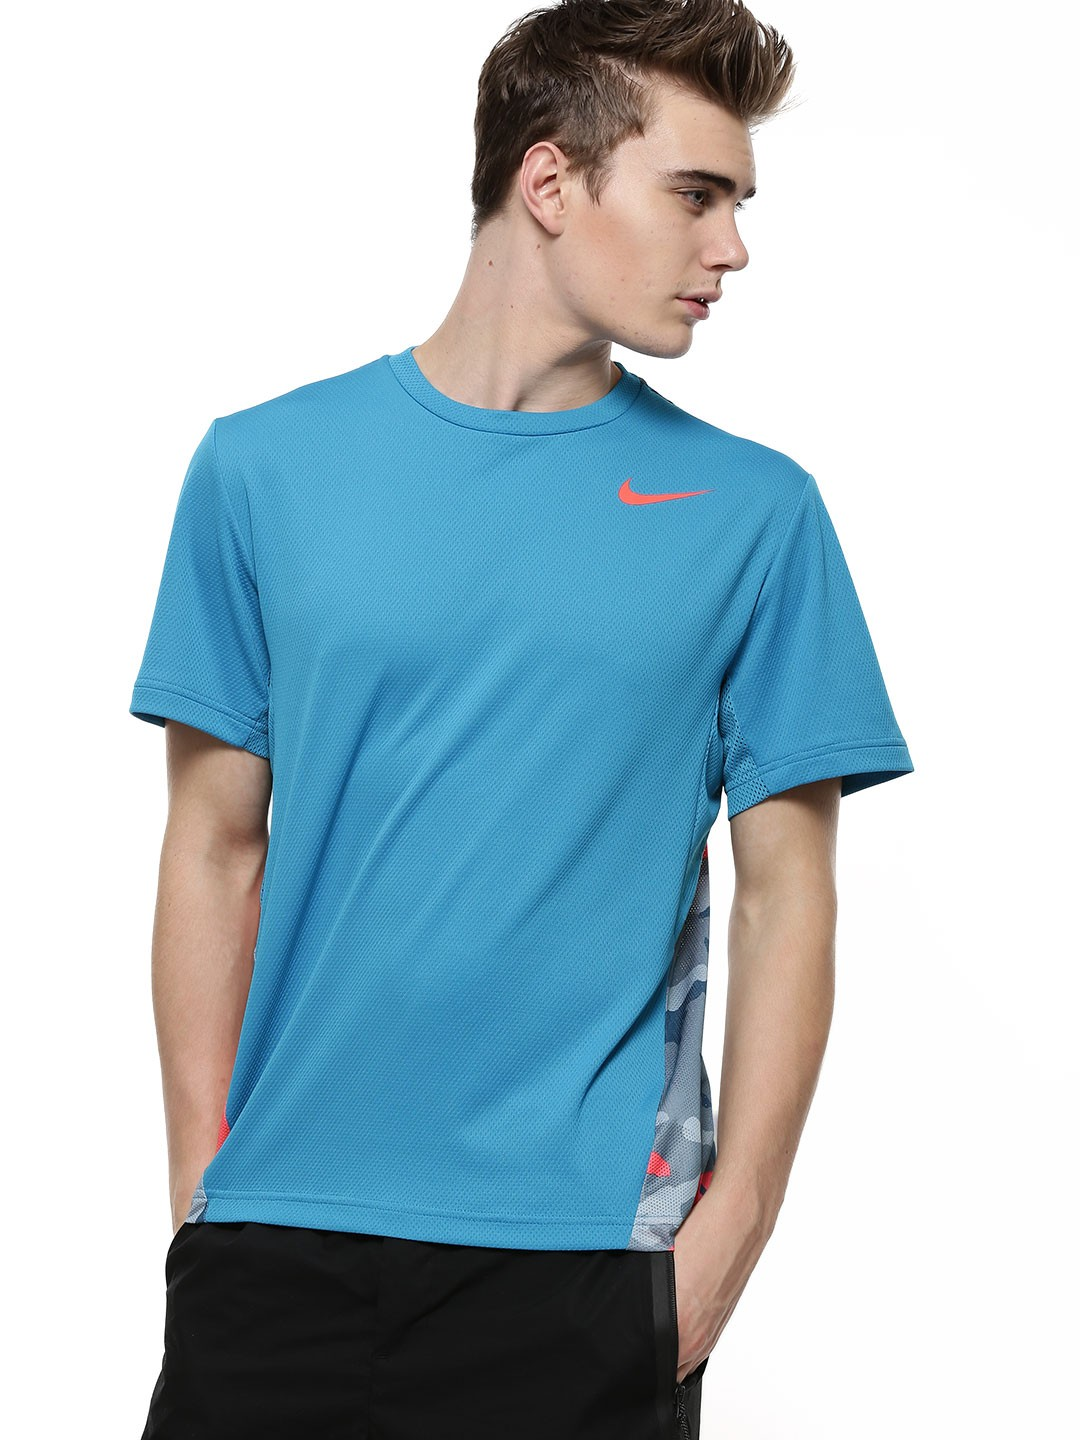 Buy nike vapor dri fit camo t shirt for men men 39 s blue t for Buy dri fit shirts